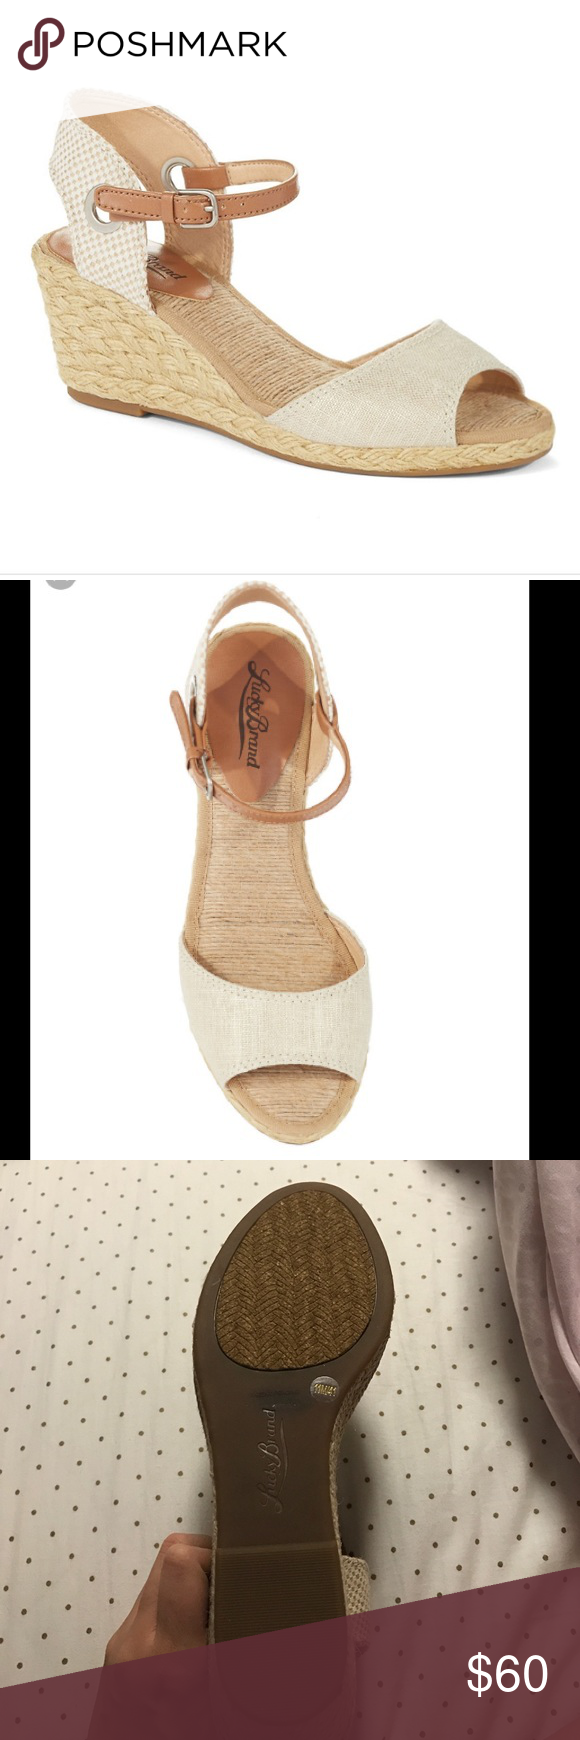 Lucky Brand Kyndra Sandal Women's Lucky Brand, Kyndra Sandal Cute and sweet, this sandal is perfect for a summer dress or jeans! Fabric and manmade upper Ankle strap with adjustable buckle closure for secure fit Smooth manmade lining Lightly cushioned footbed for added comfort 2 1/2 inch jute-wrapped wedge heel Manmade outsole. Heel Height of 2.50 inches. Lucky Brand Shoes Sandals